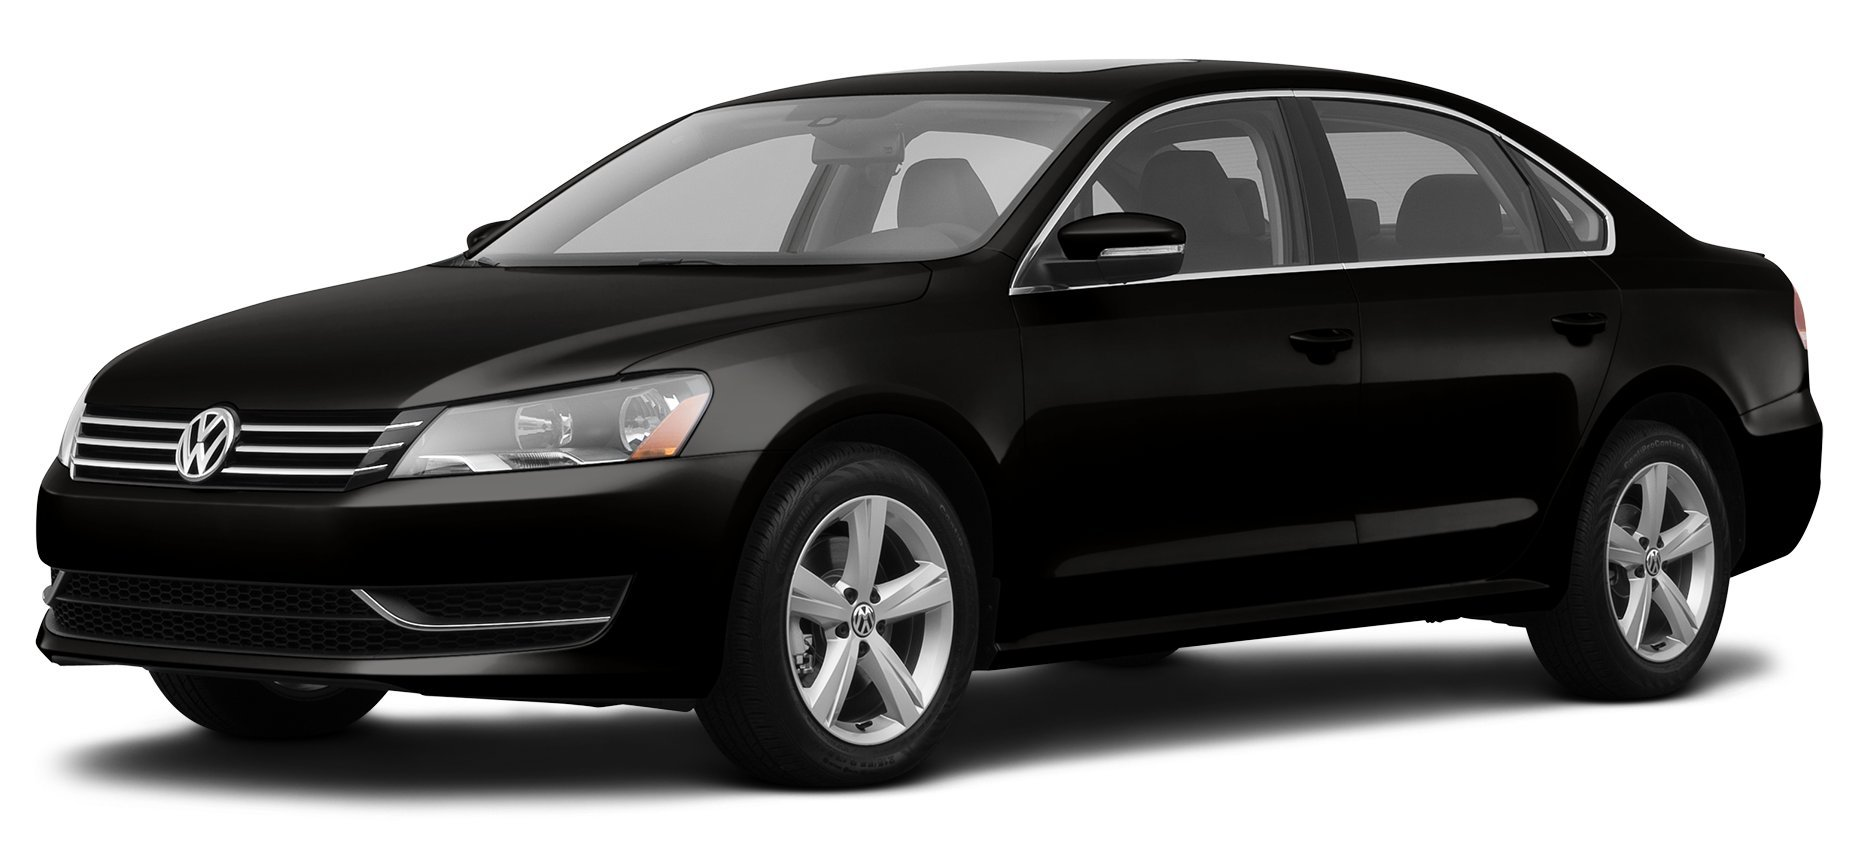 ... 2013 Volkswagen Passat SE, 4-Door Sedan 2.5L Manual Transmission. 2013 Mazda  3 Mazdaspeed3 ...